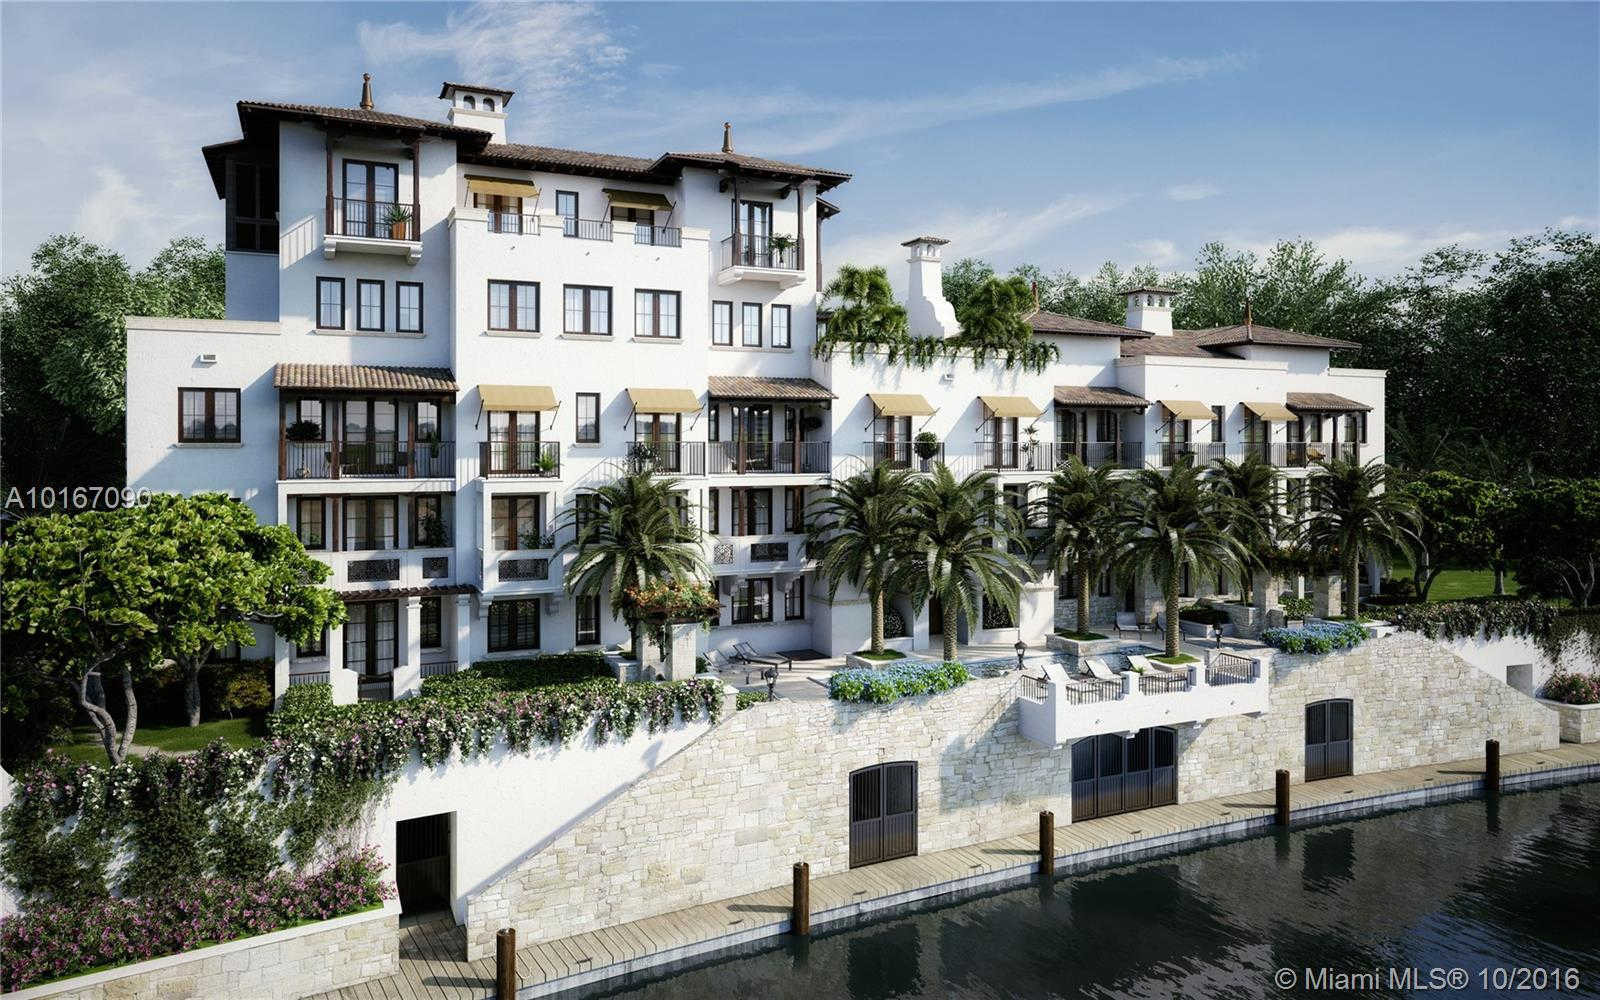 6100 Caballero Blvd #Atelier South, Coral Gables, FL 33146 now has a new price of $1,328,760!